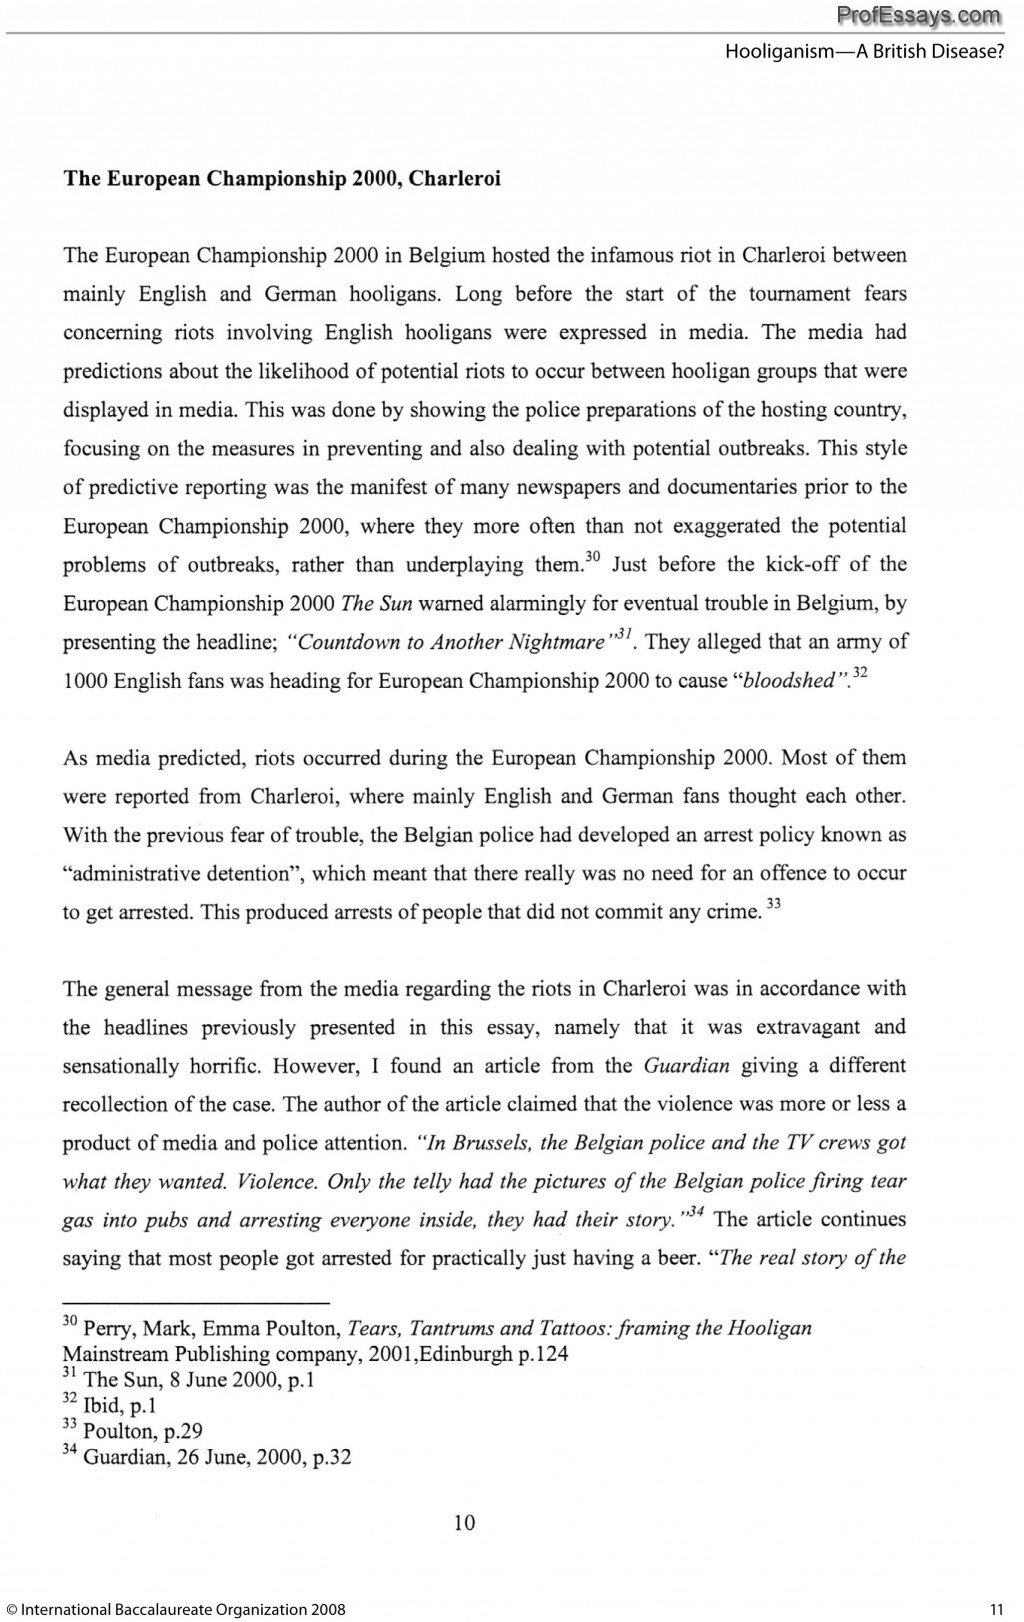 003 Collage Essays Ib Extended Free Sample Unbelievable Essay Examples Large